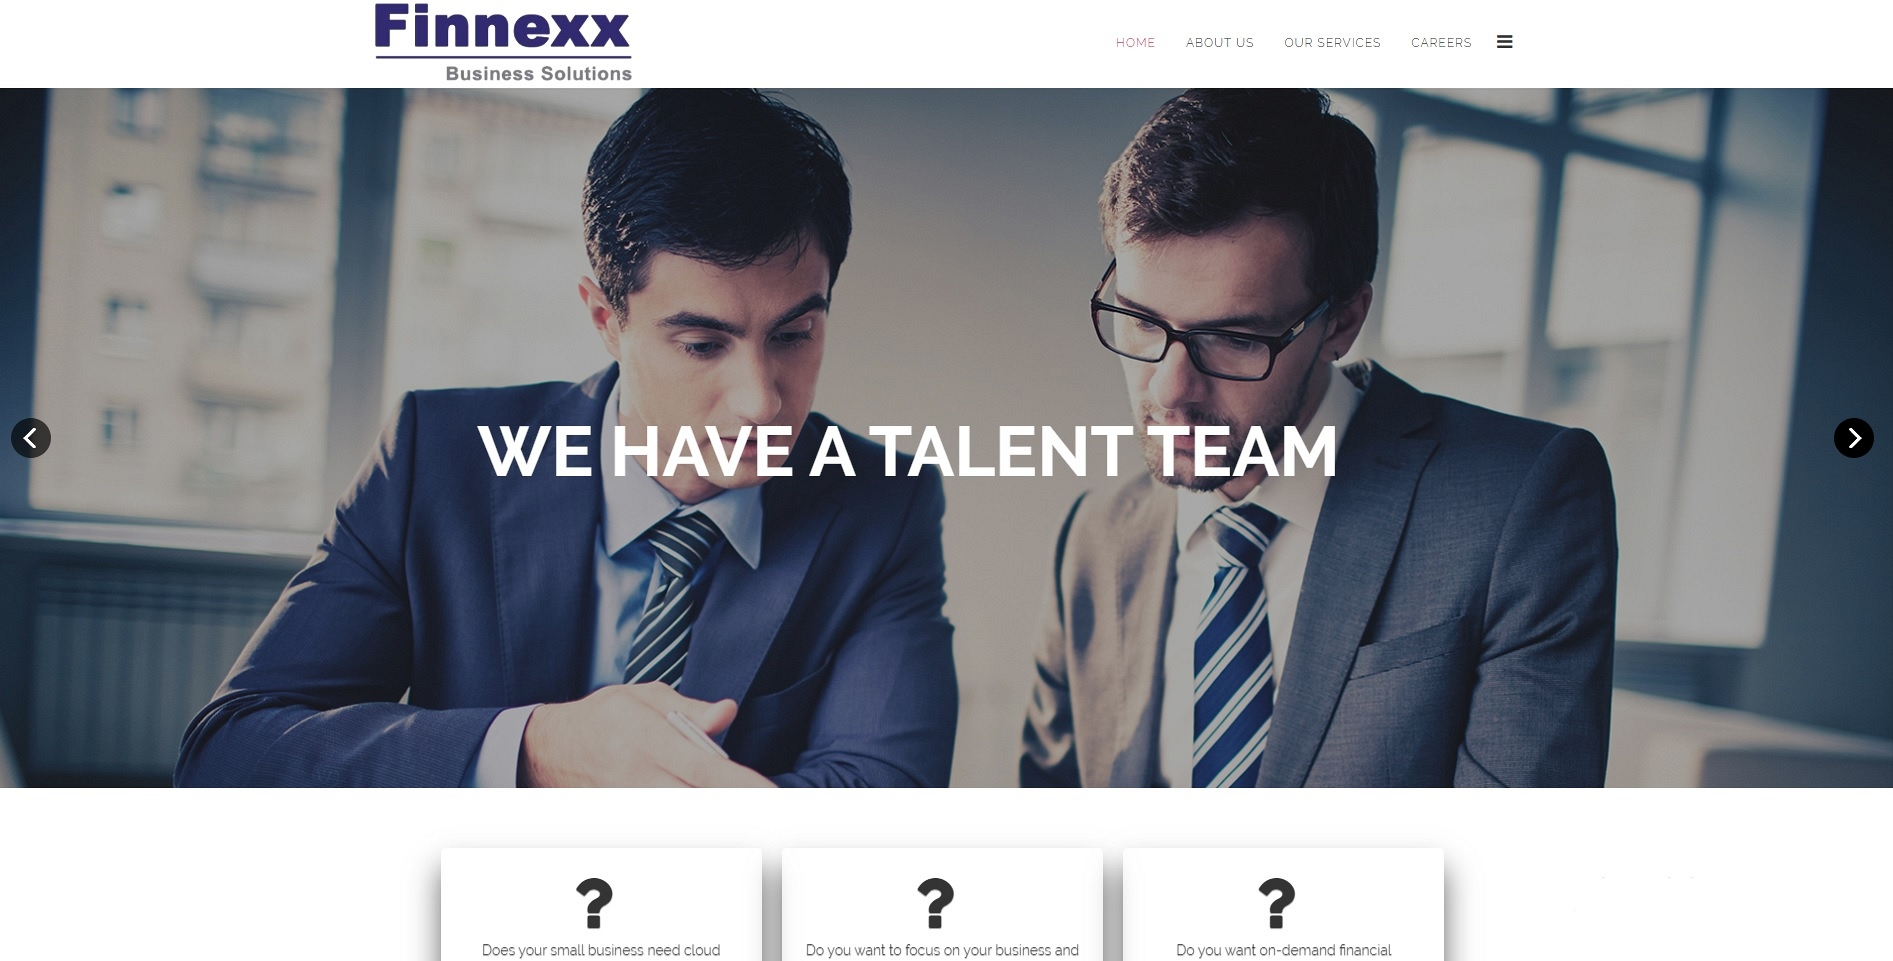 Finnexx Business Solutions